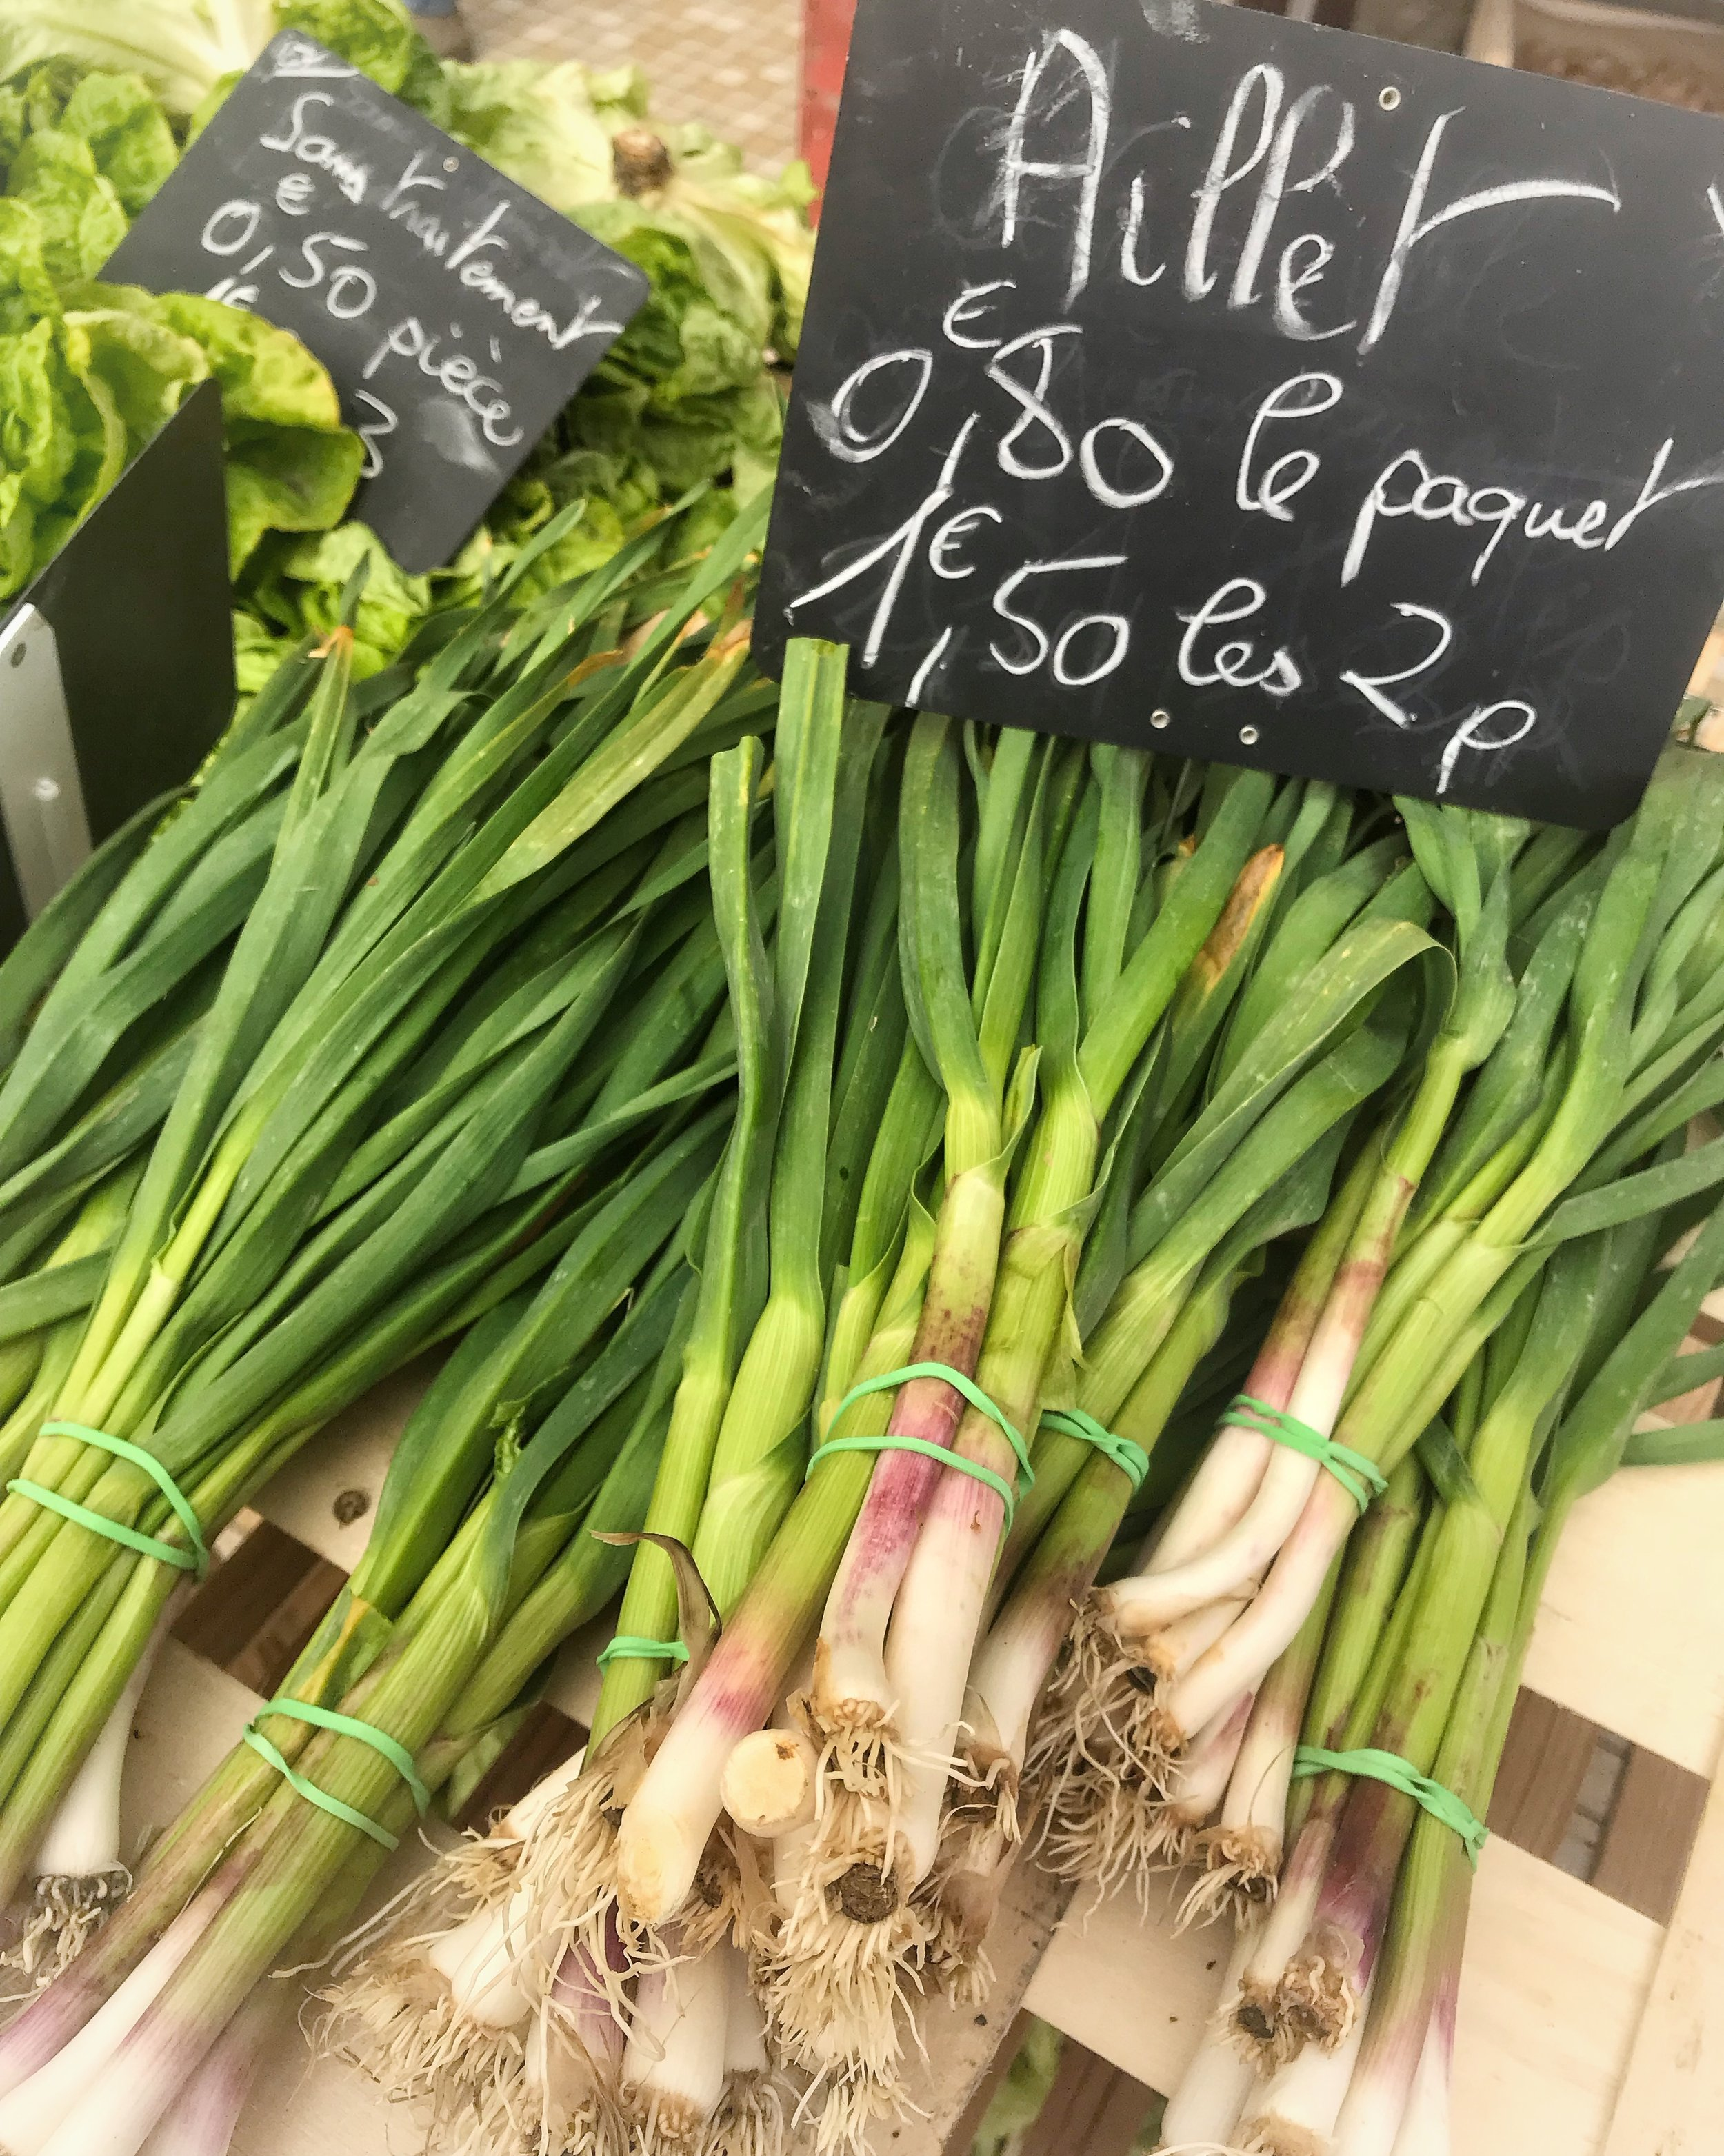 Fresh Spring Garlic Shoots-  Aillets